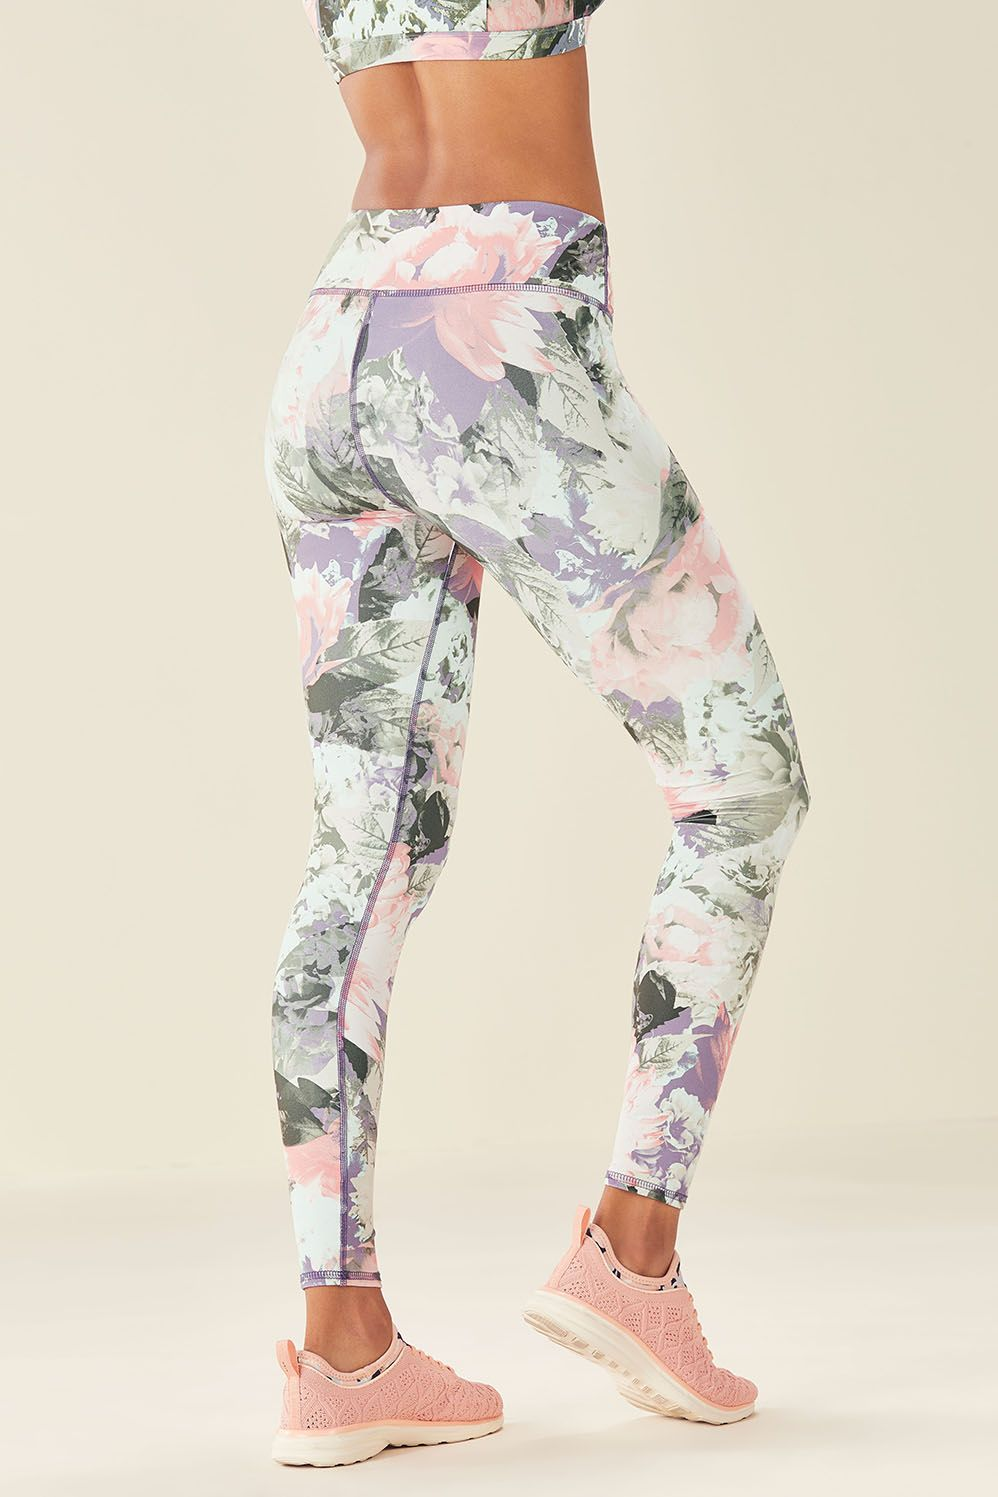 MidRise Printed PowerHold® Legging Tops for leggings